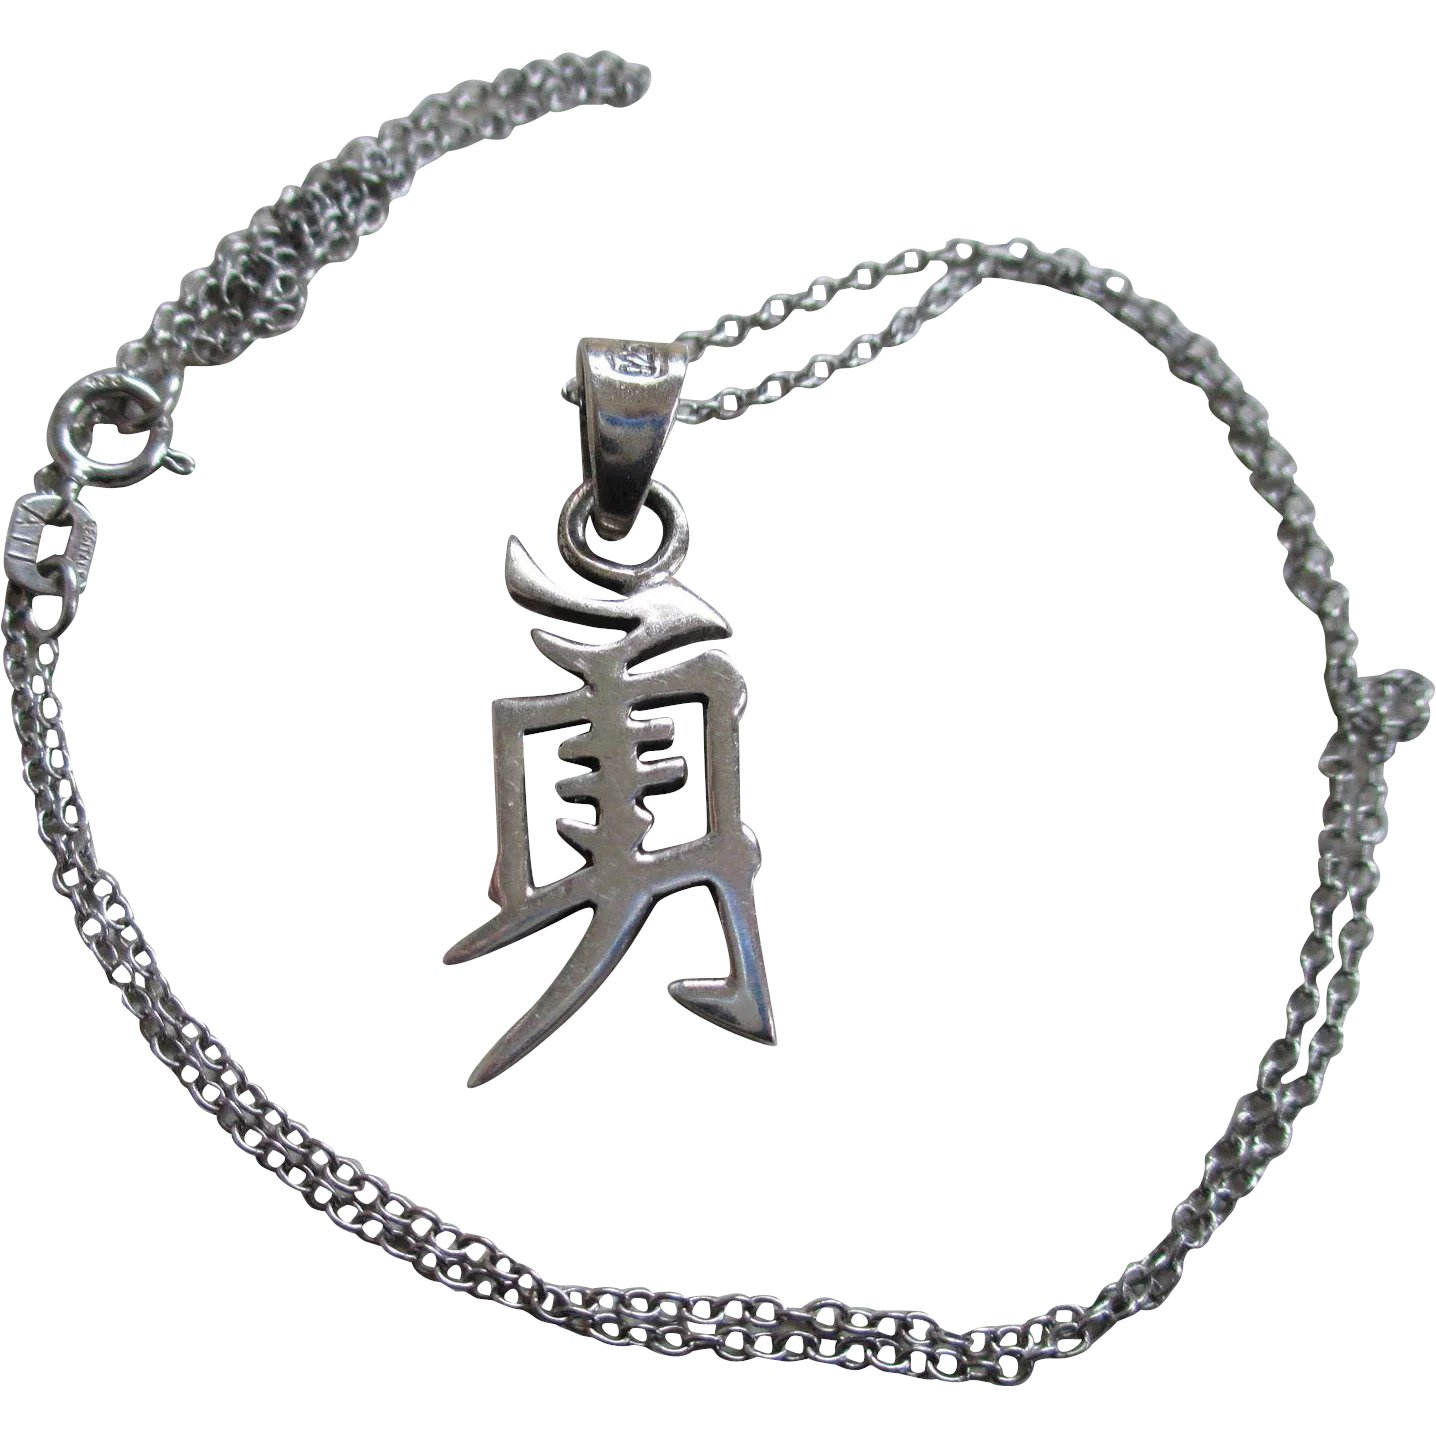 Vintage 925silver Chinese Symbol Courage Necklace Silvermoon